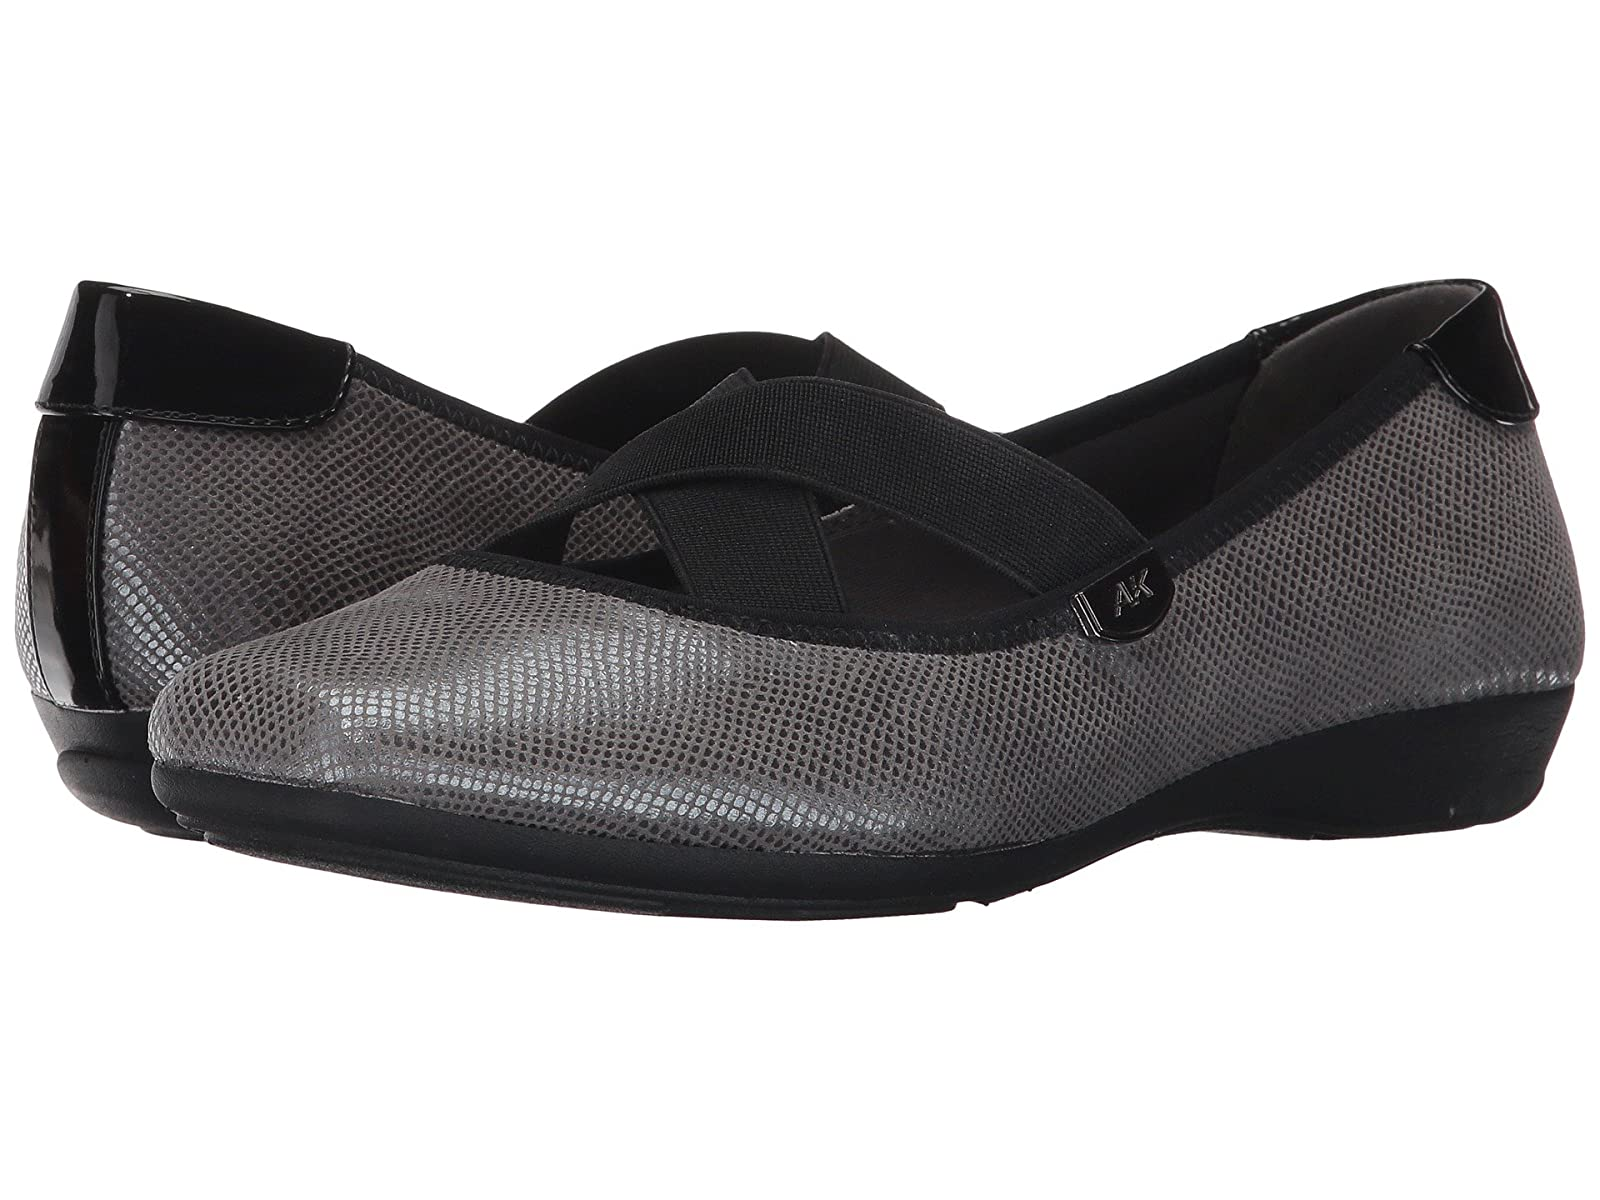 Anne Klein UlisaCheap and distinctive eye-catching shoes